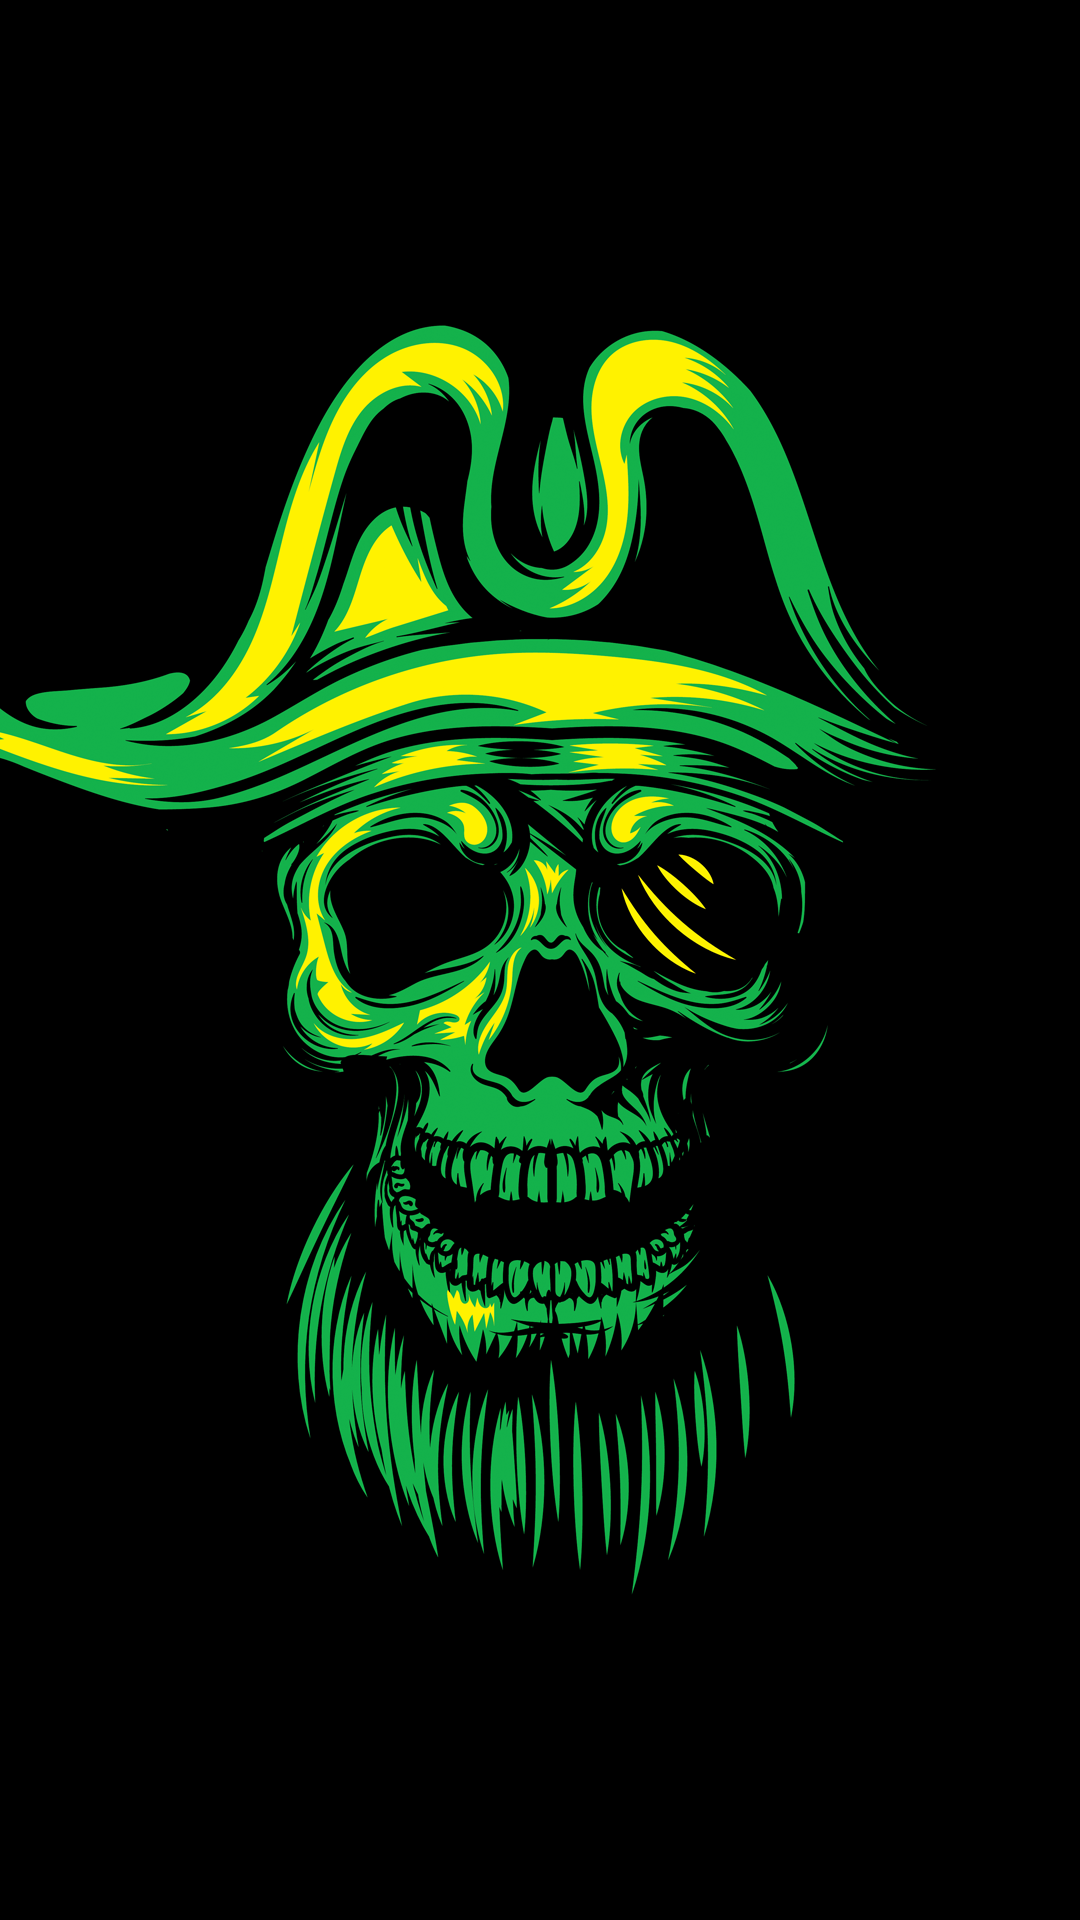 Download Our HD Pirate Skull Wallpaper For Android Phones